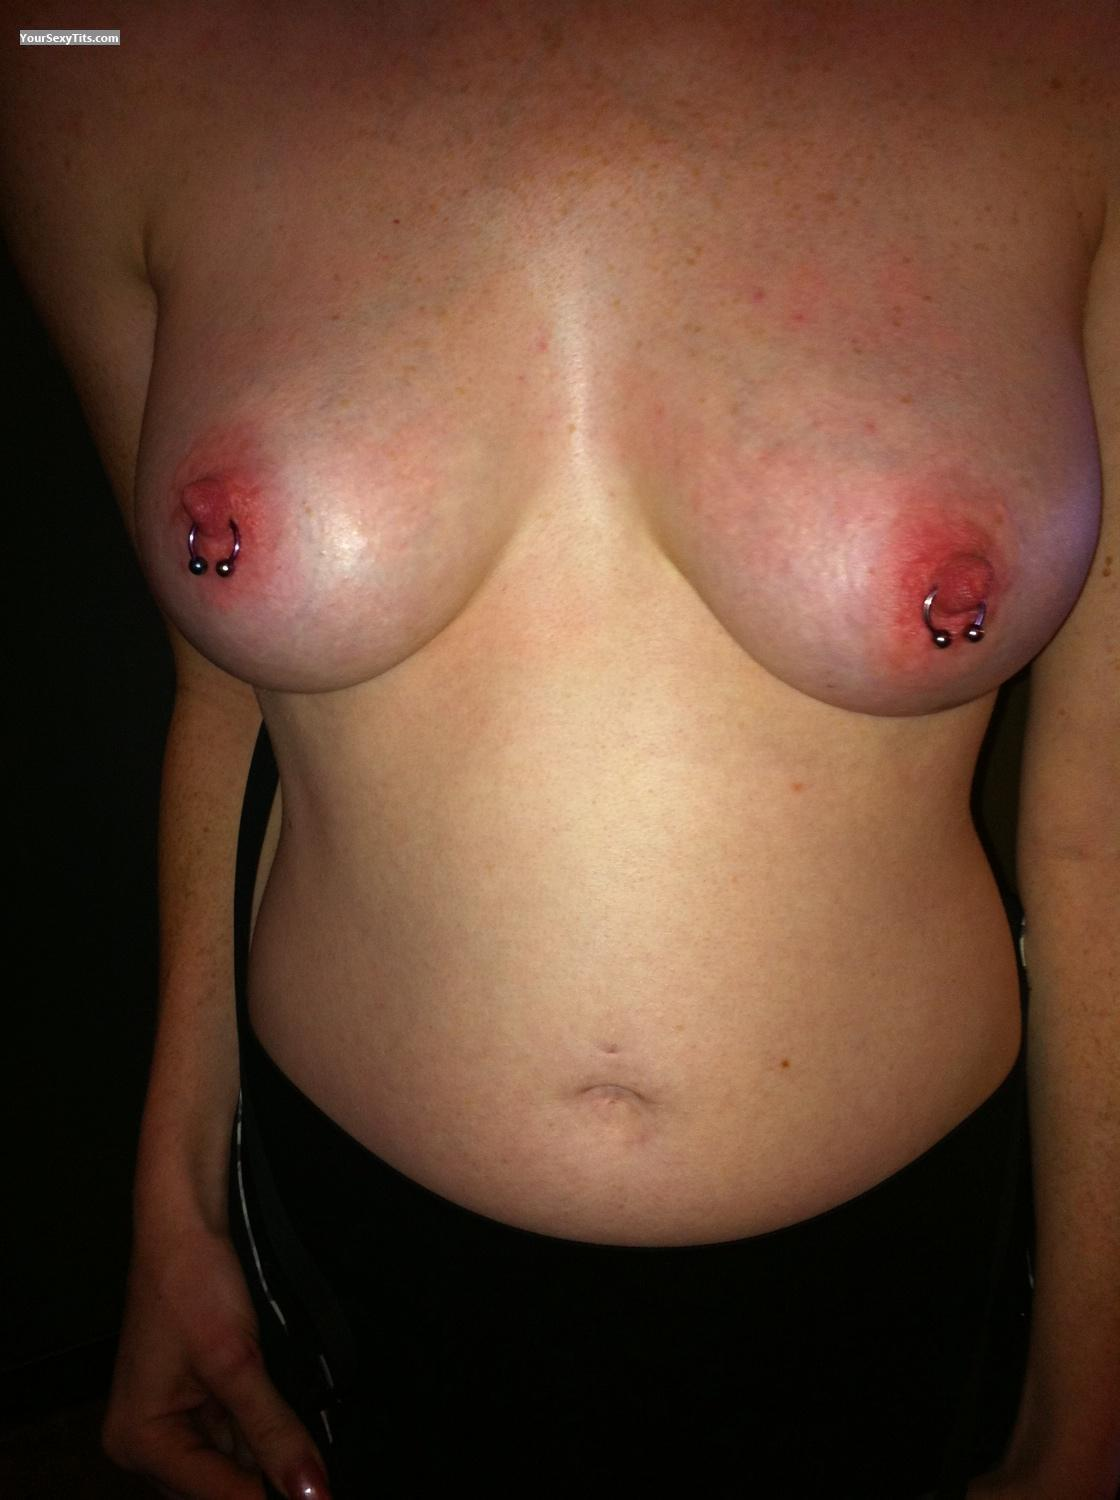 Tit Flash: Medium Tits By IPhone - Lucy7 from United StatesPierced Nipples